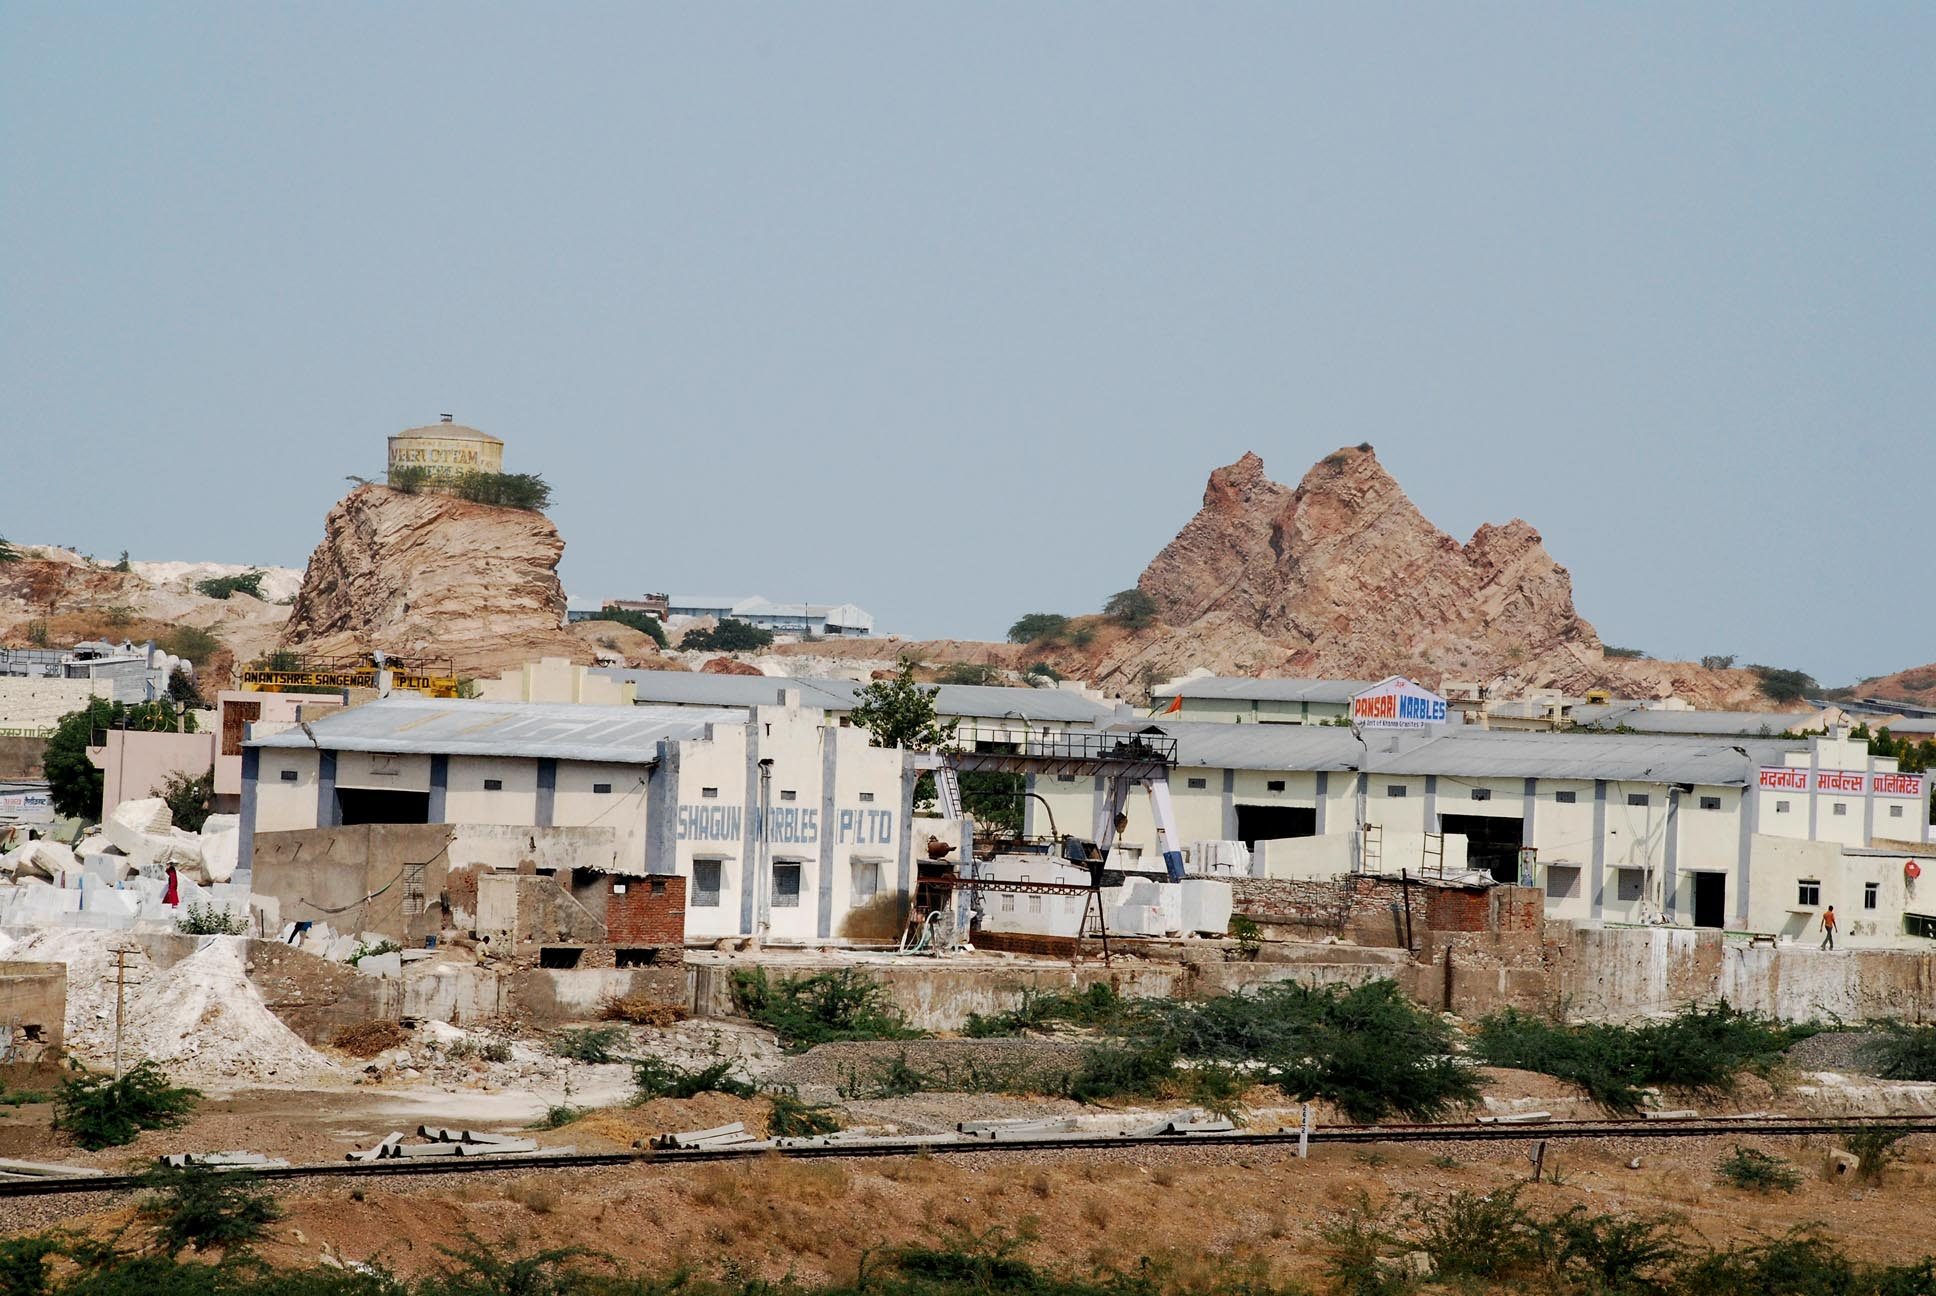 These hills were once very high. On the outskirts of Kishangarh